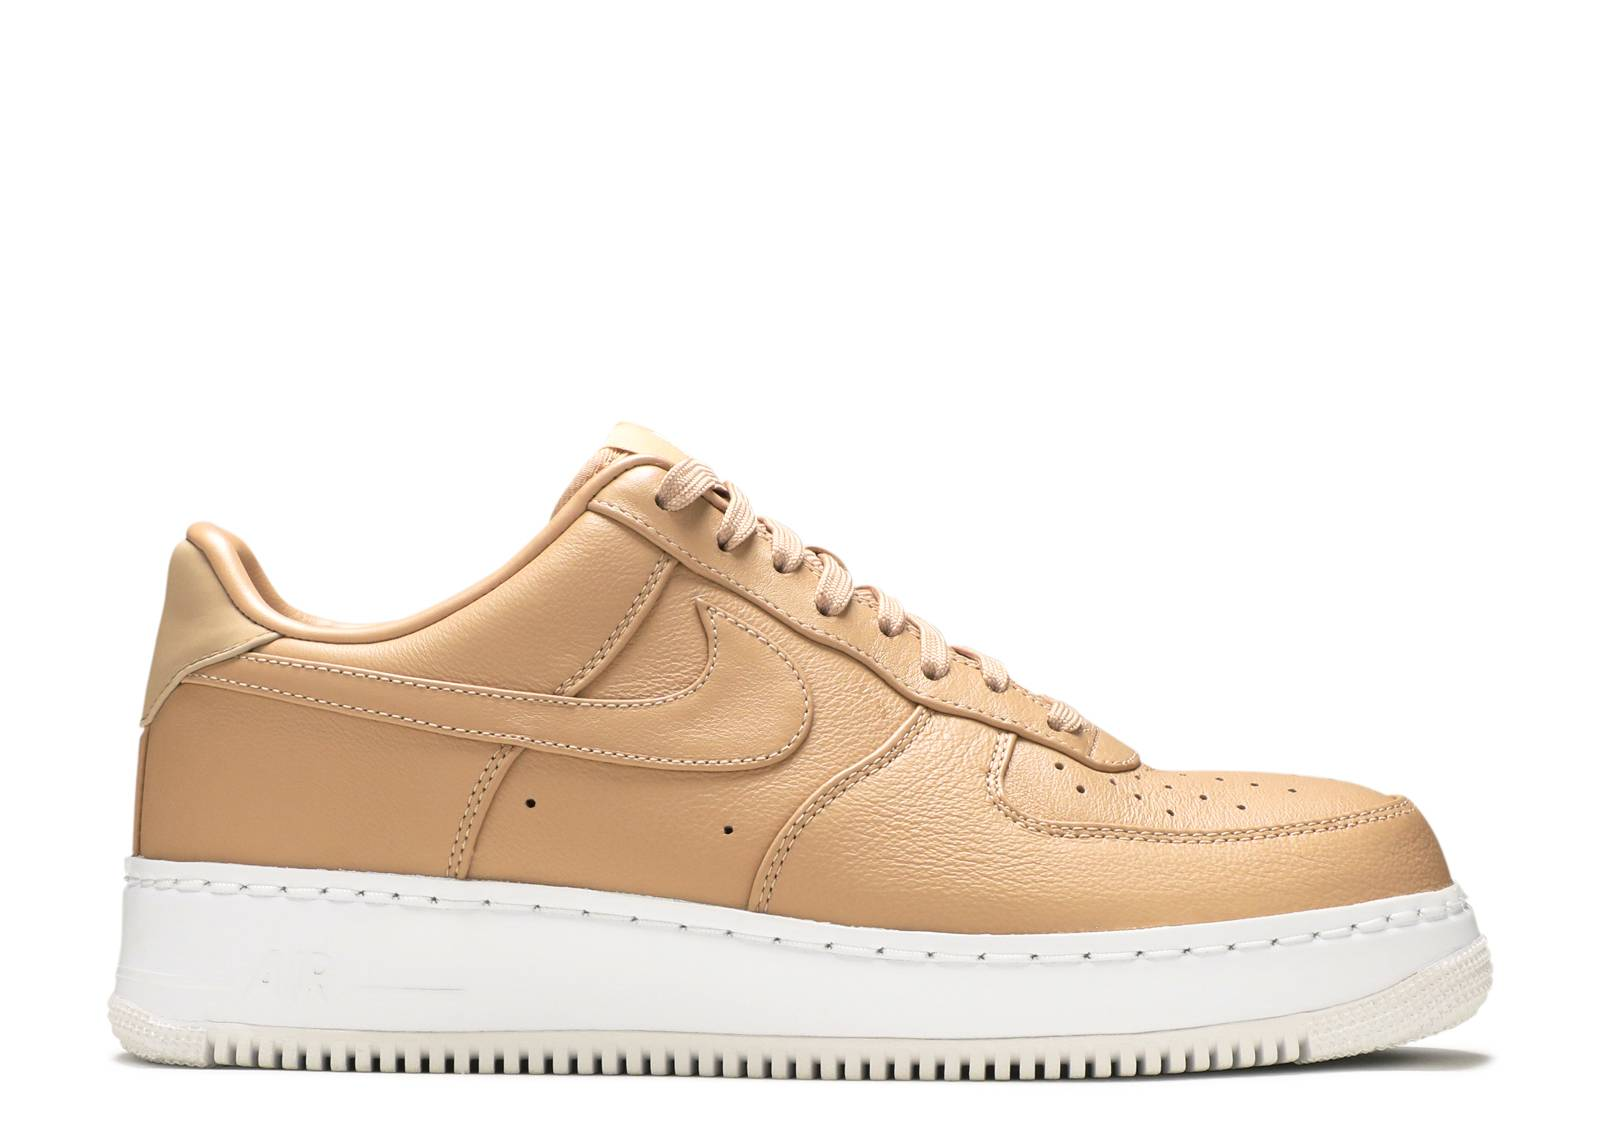 Nikelab Air Force 1 Low Nike 555106 200 vachetta tan/ vchtt